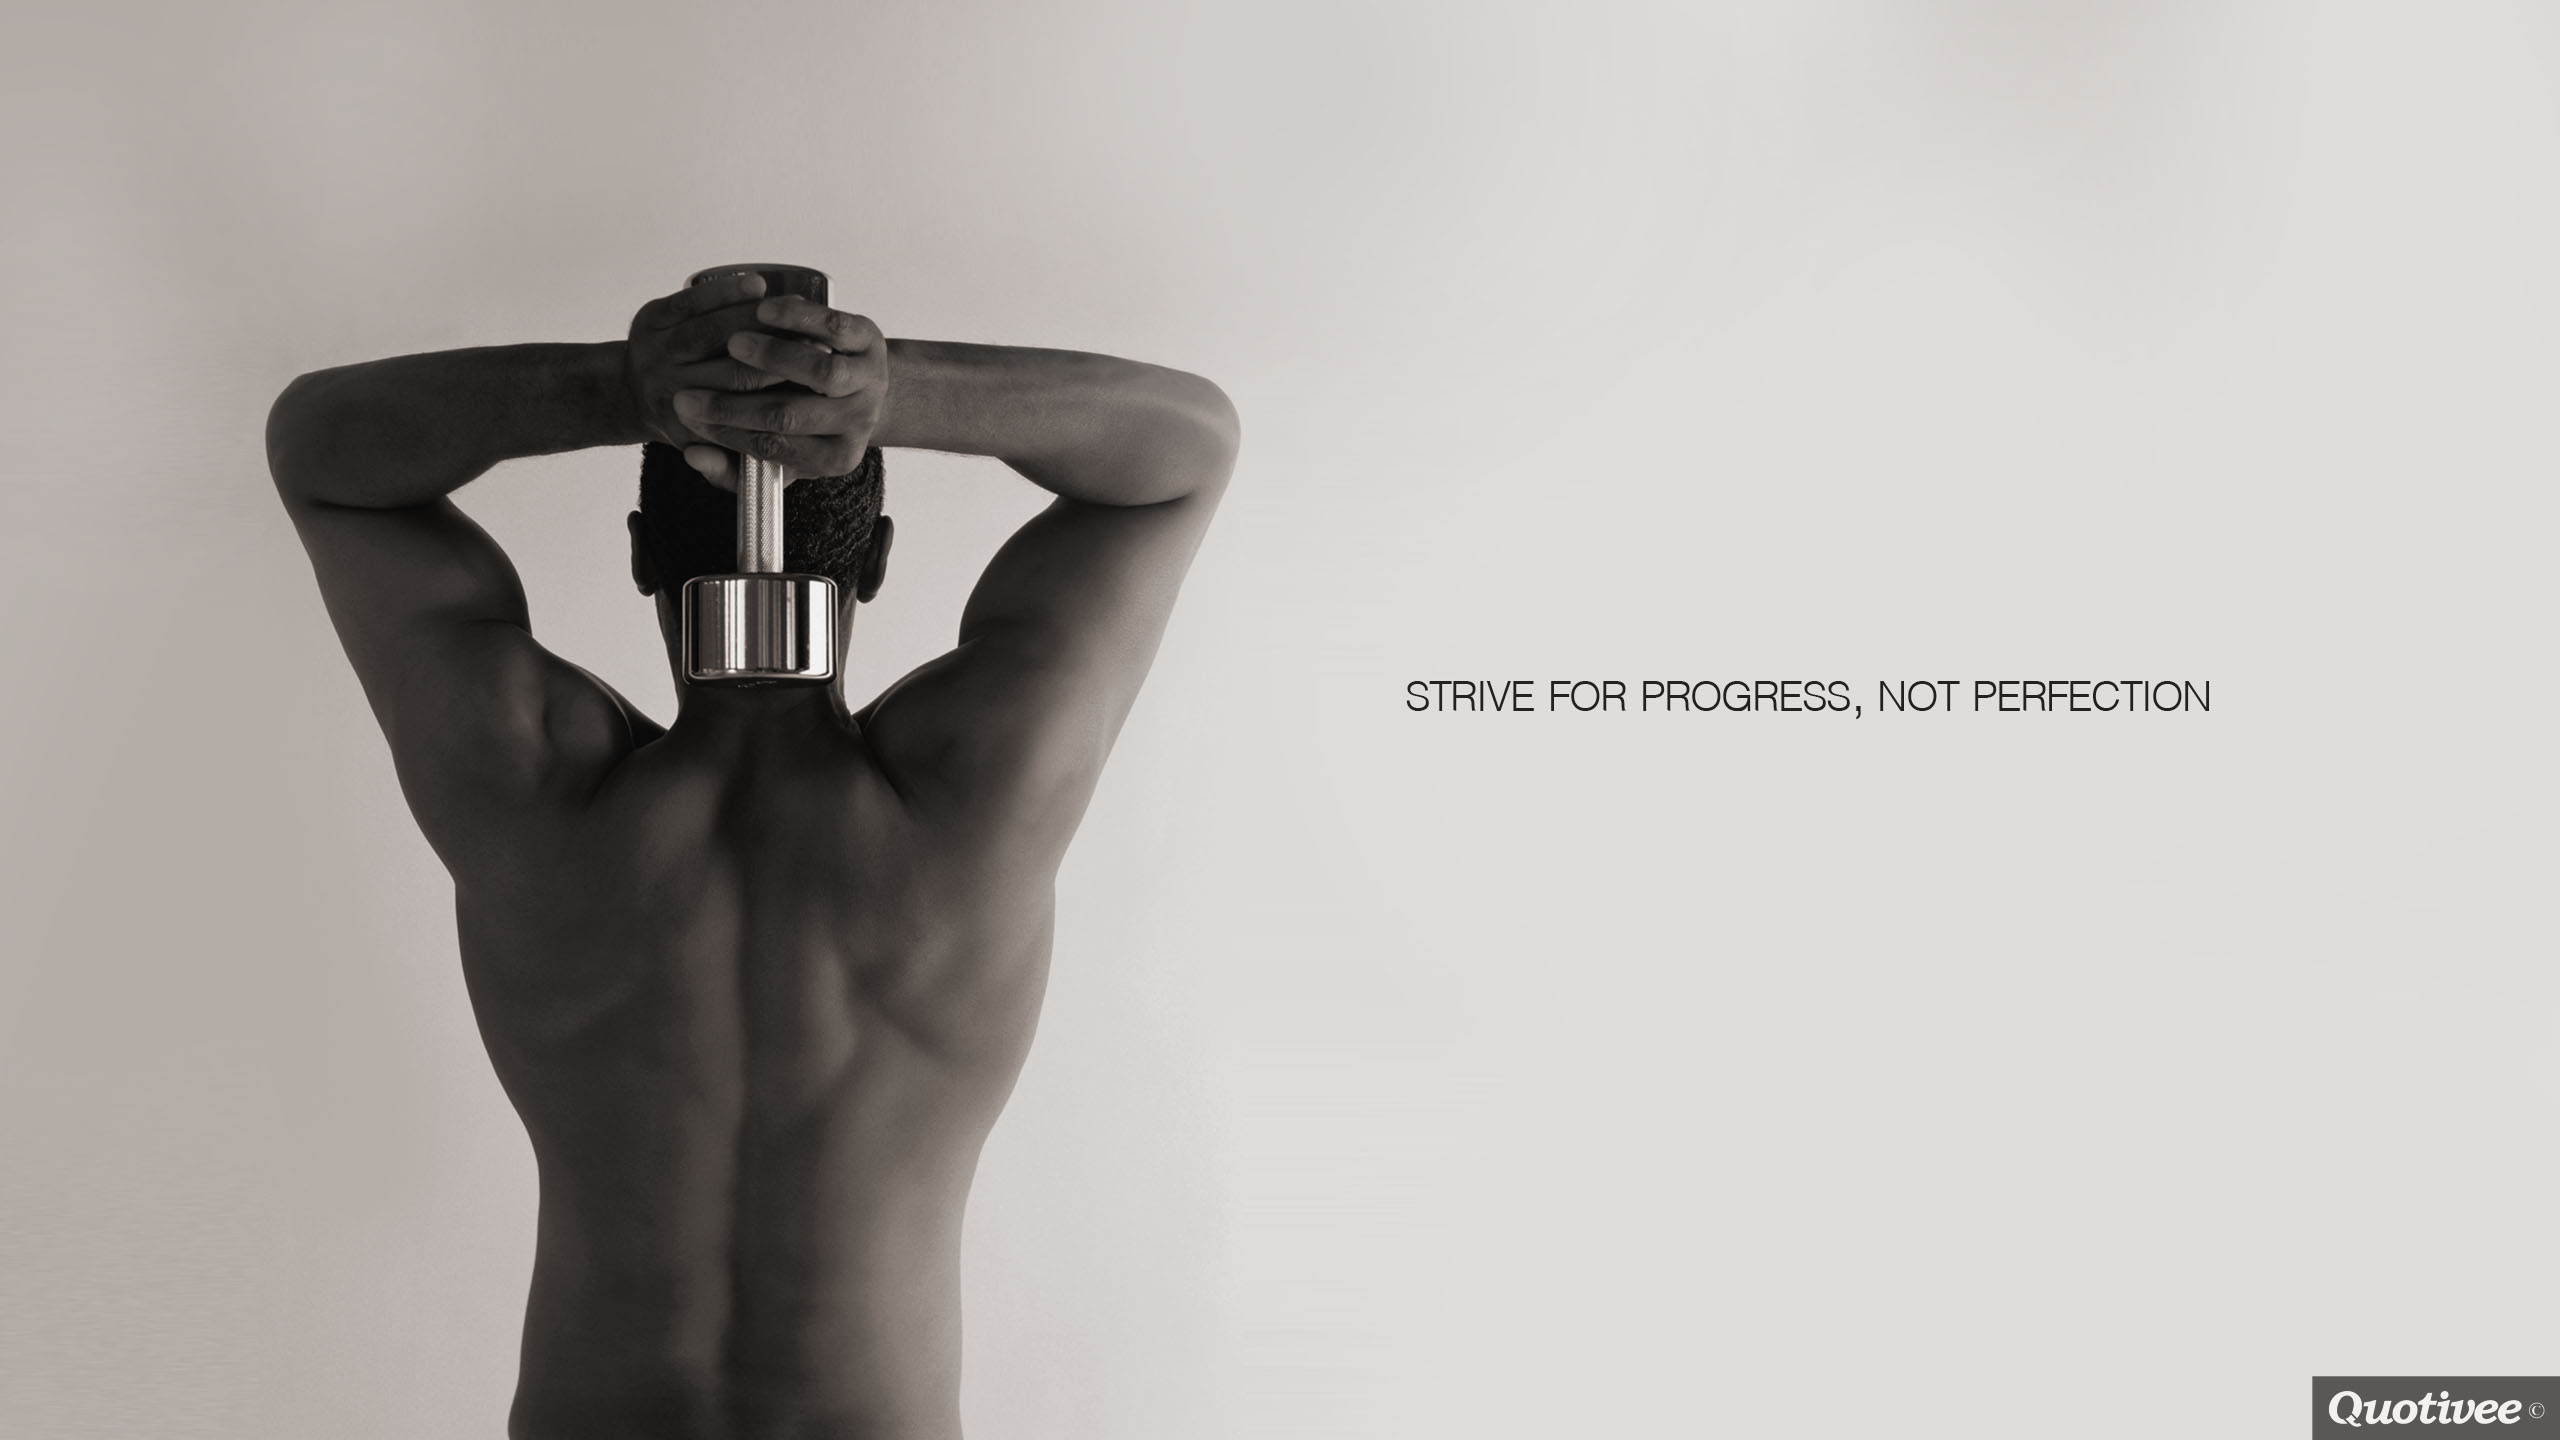 Strive for Progress - Inspirational Quotes | Quotivee